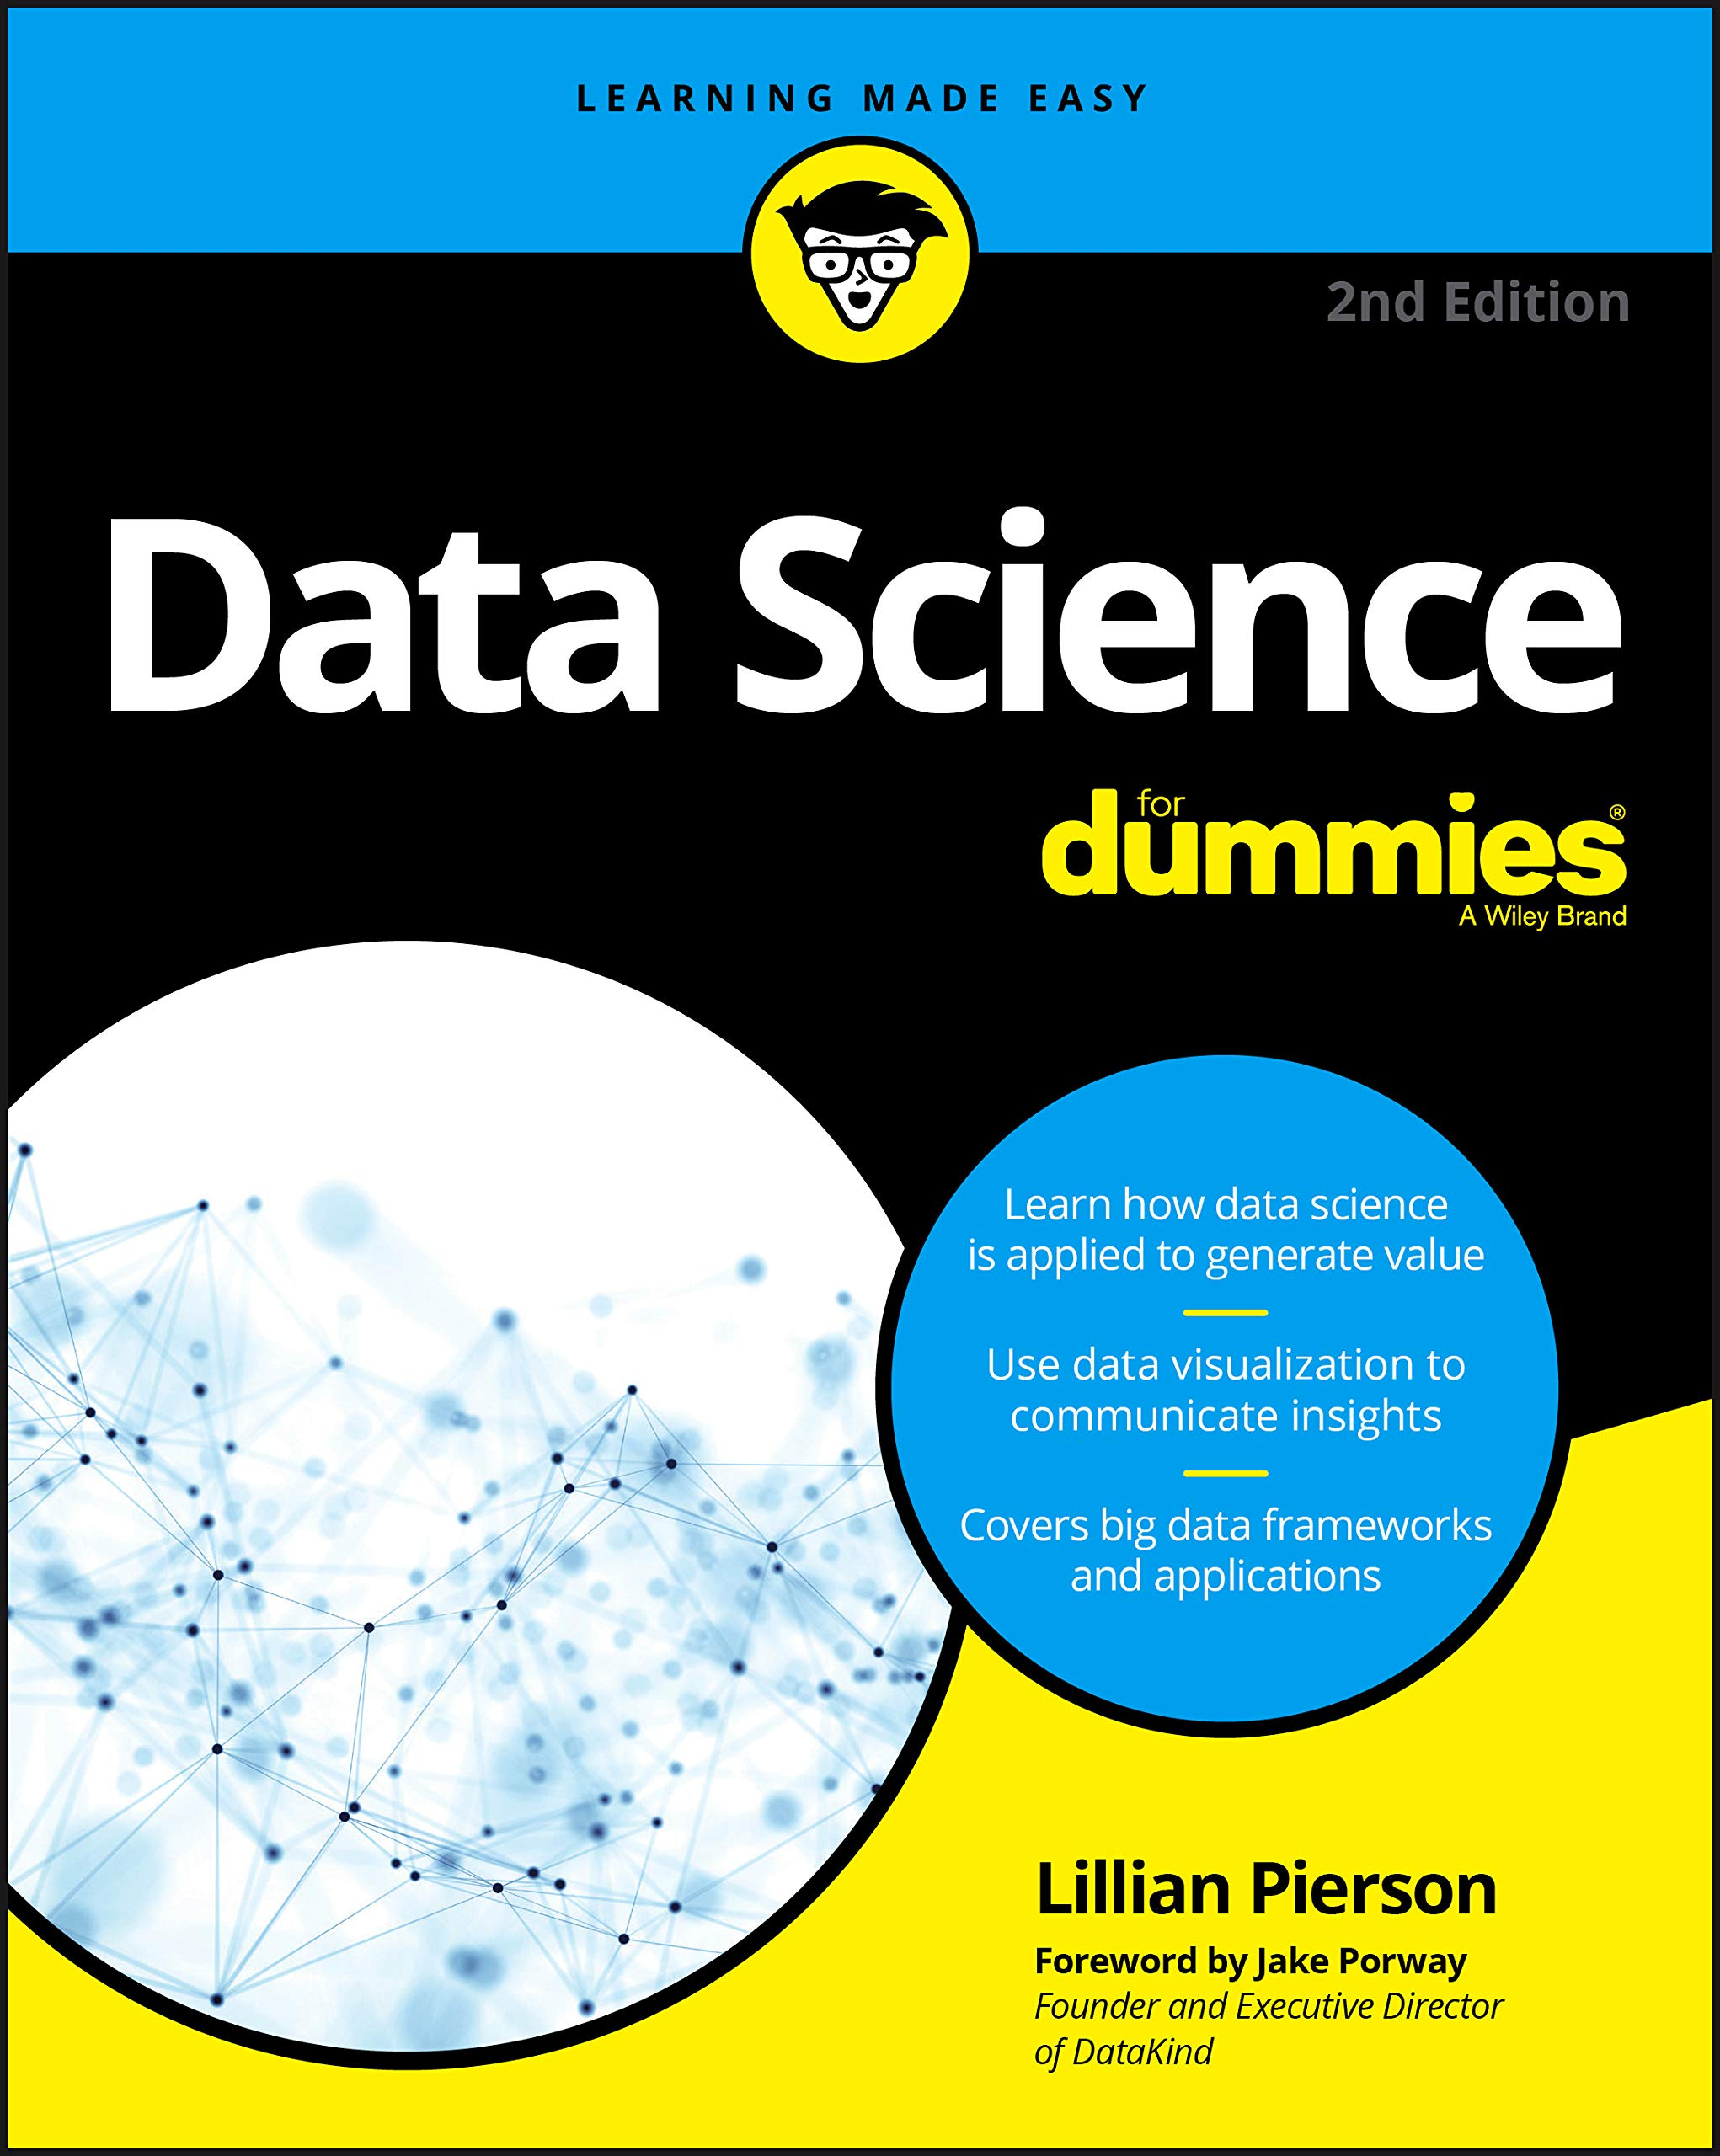 "<a href=""https://books.apple.com/us/book/data-science-for-dummies/id1208905171"" target=""_blank"" rel=""noopener noreferrer nofollow"">Источник</a>"